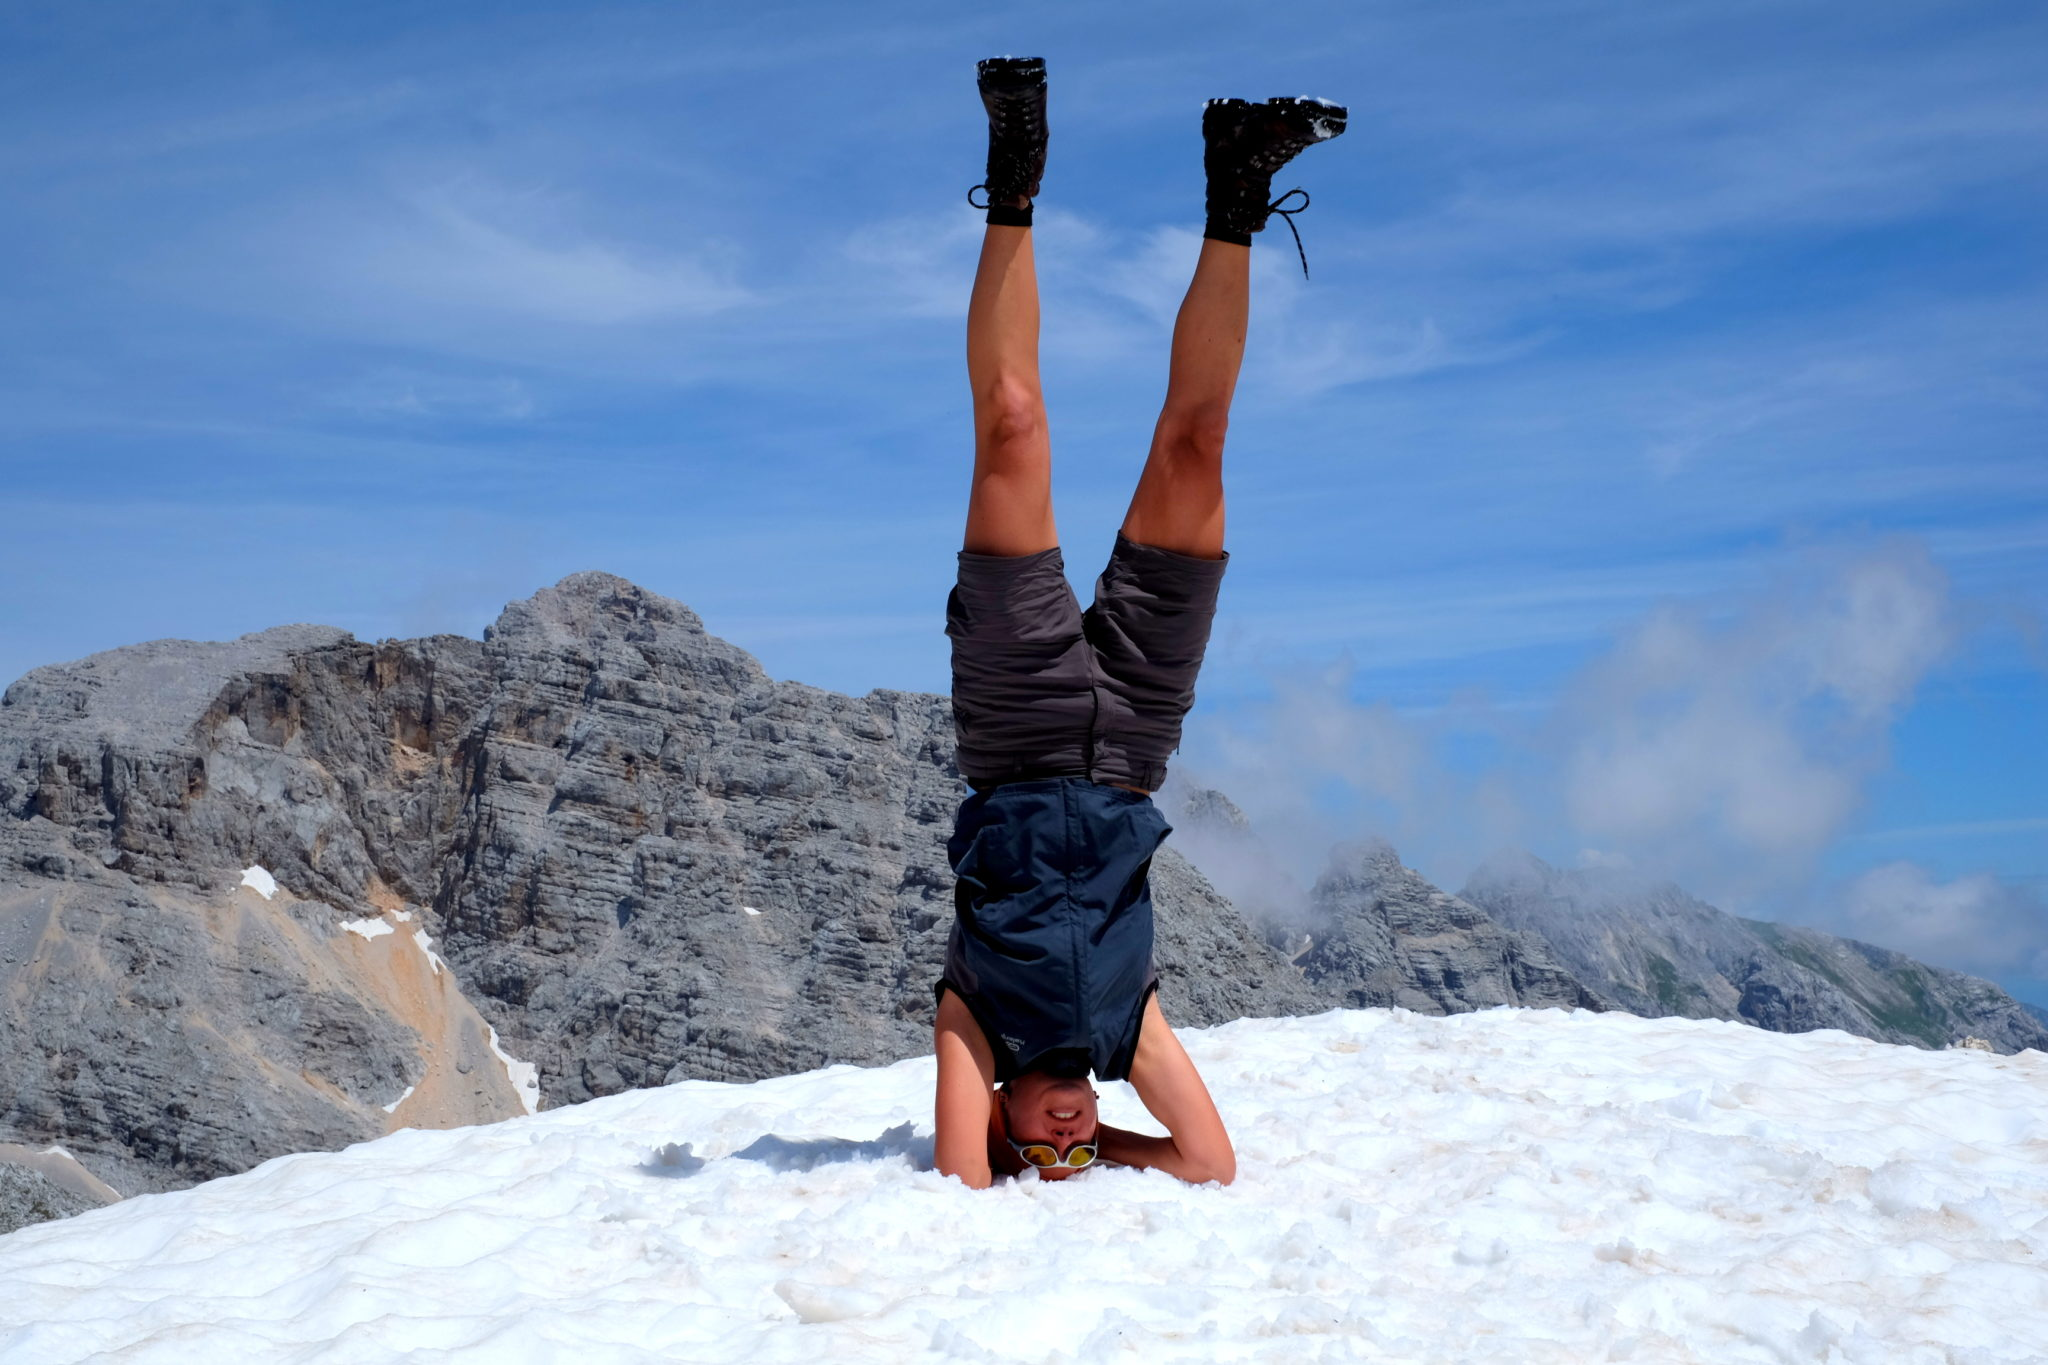 Doing a headstand on Mt. Križ.